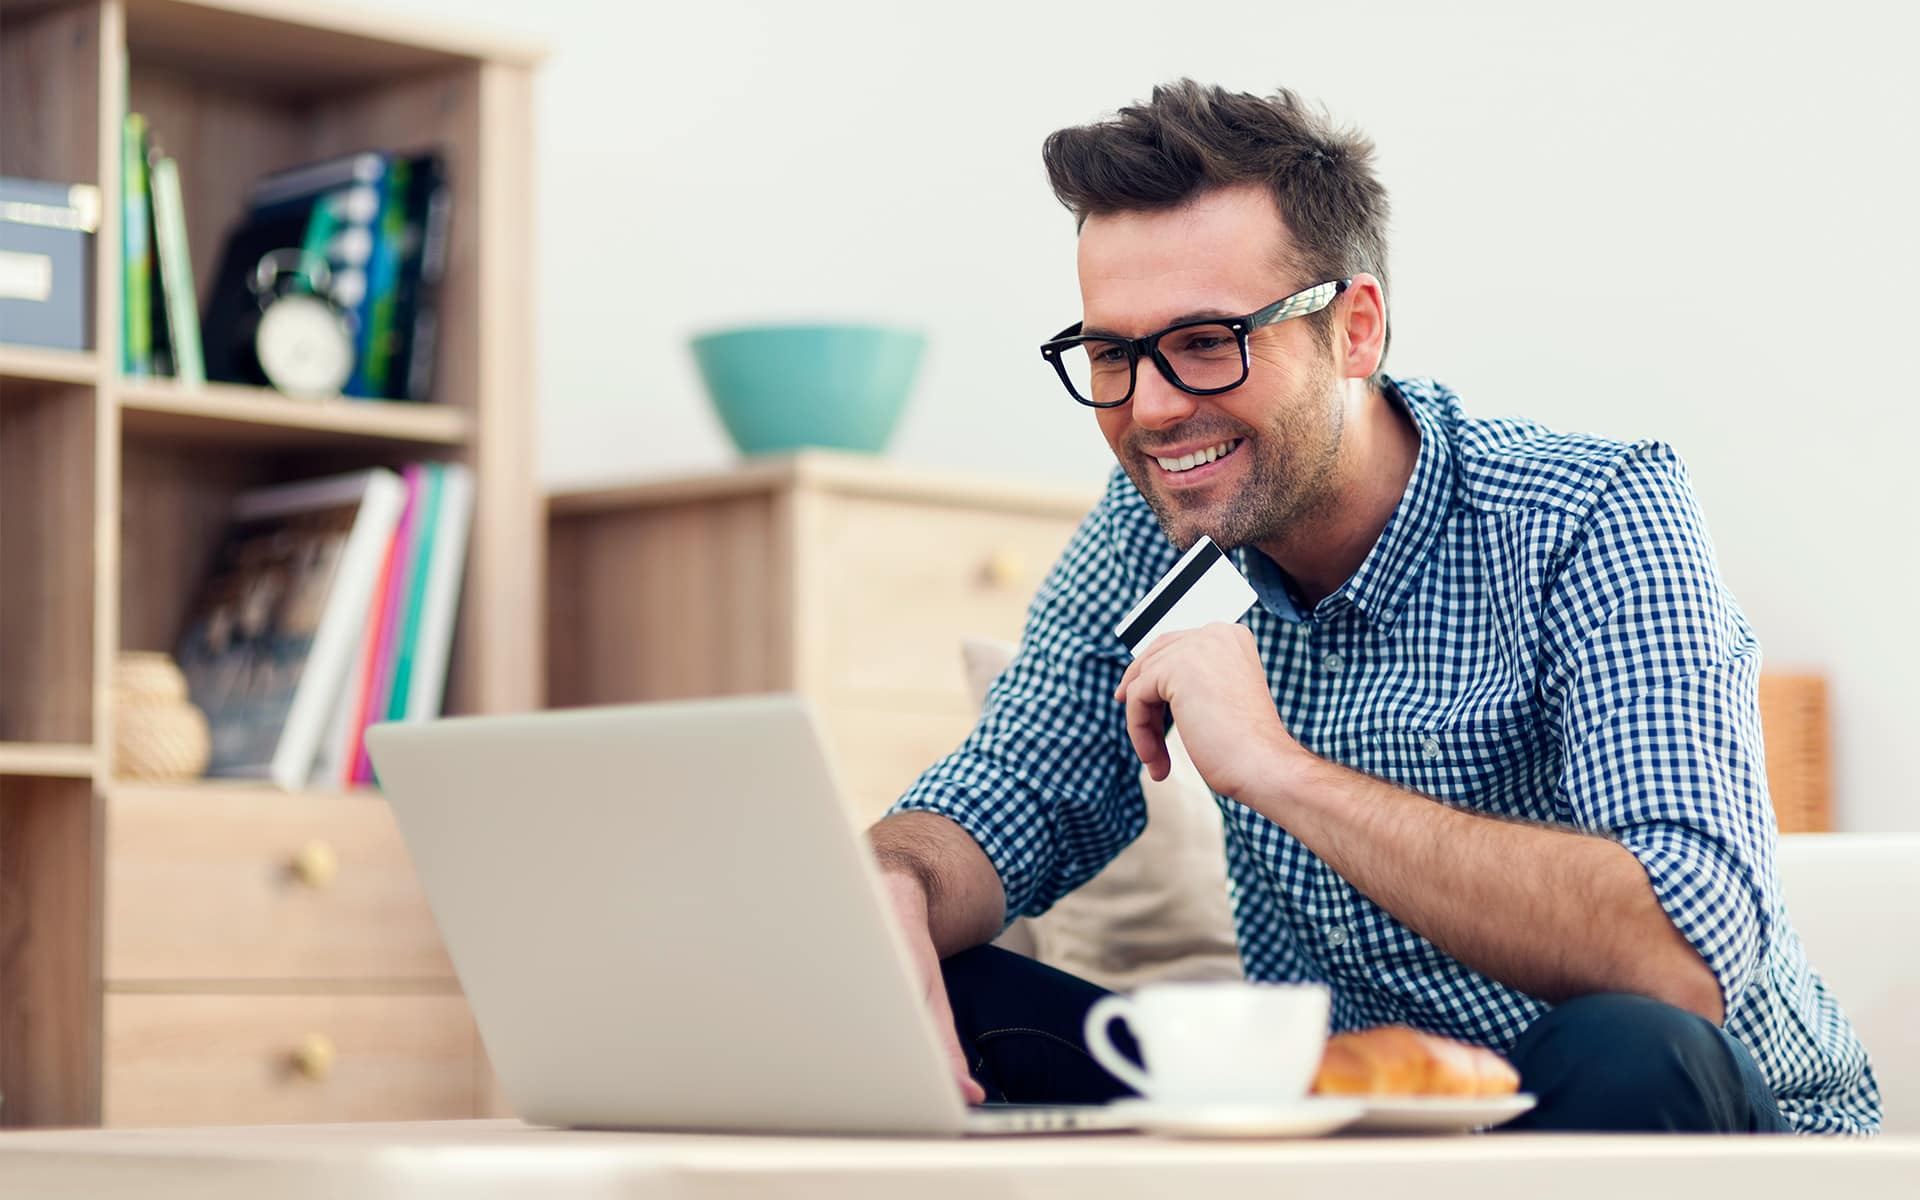 Resolving the compliance/customer experience challenge - man in front of a computer